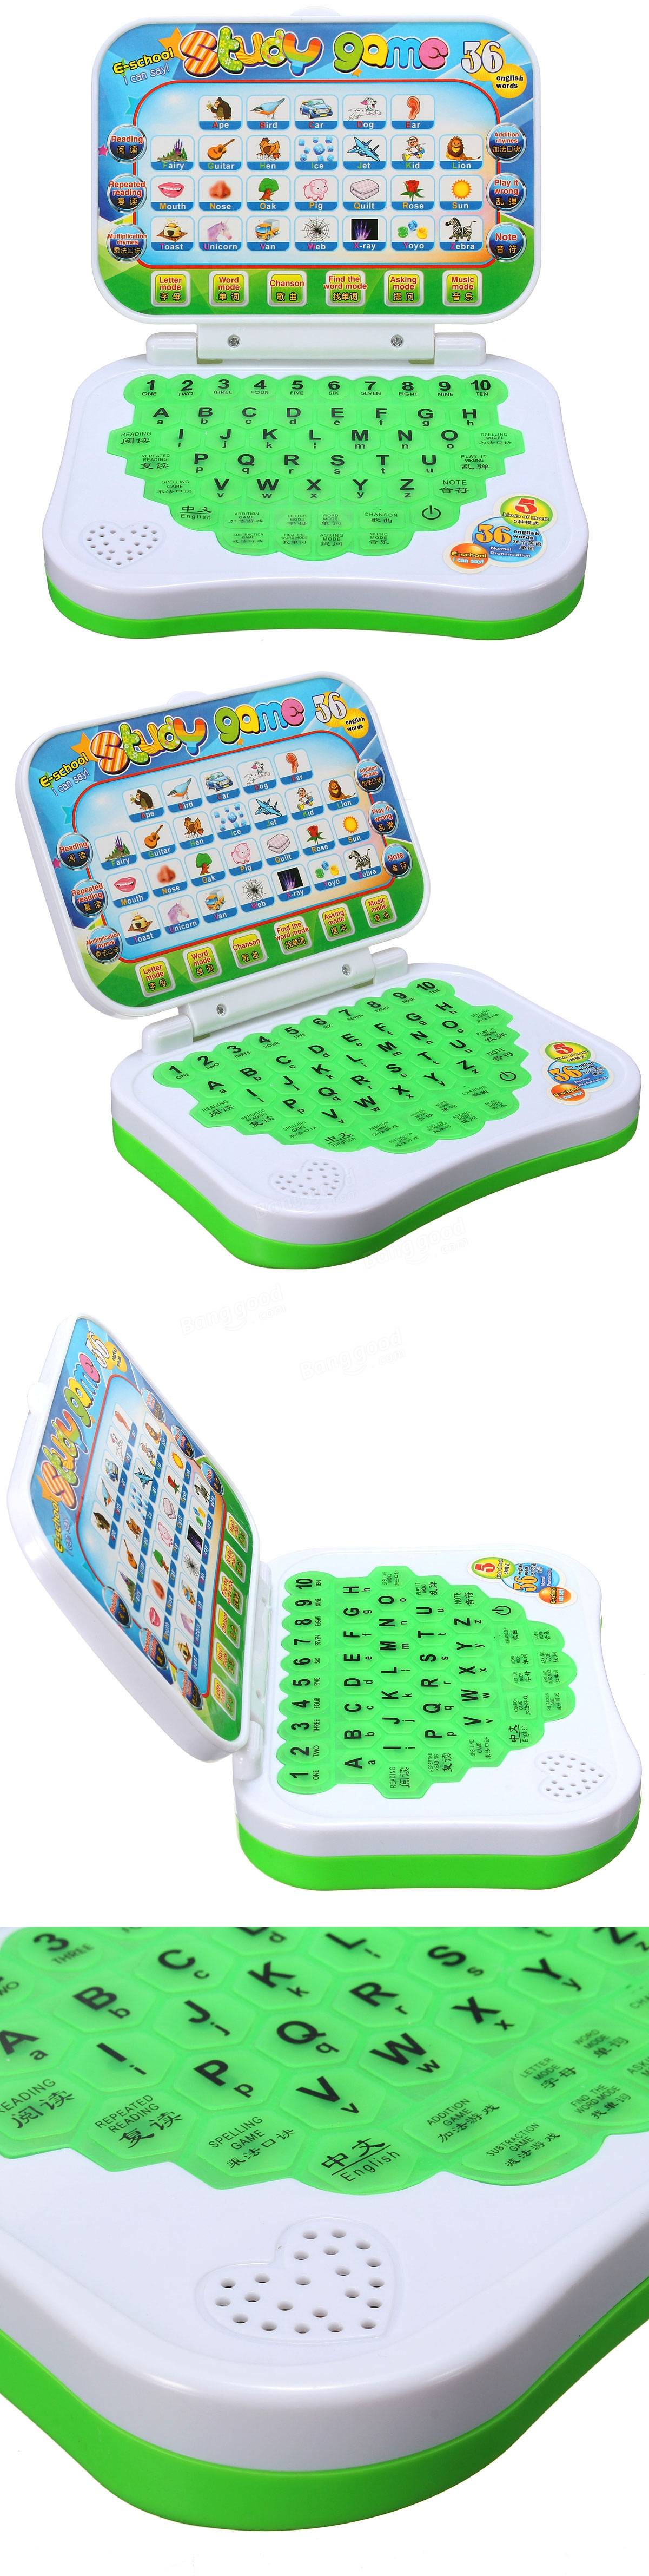 Mini PC Baby Kids Toys Study Game Intellectual Learning Keyboard